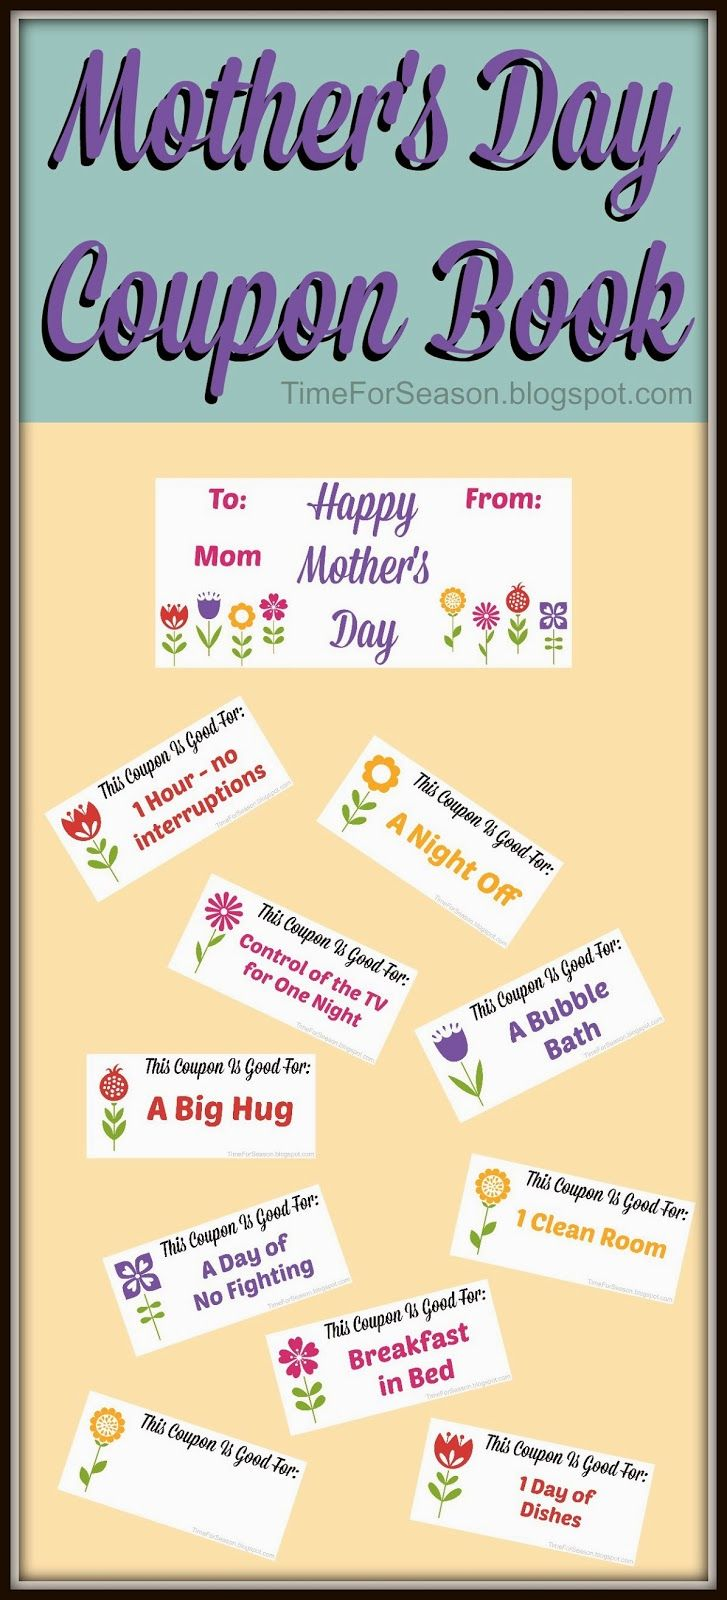 free mothers day coupon book printable mom gift for mother atimeforseasons fun for kids. Black Bedroom Furniture Sets. Home Design Ideas